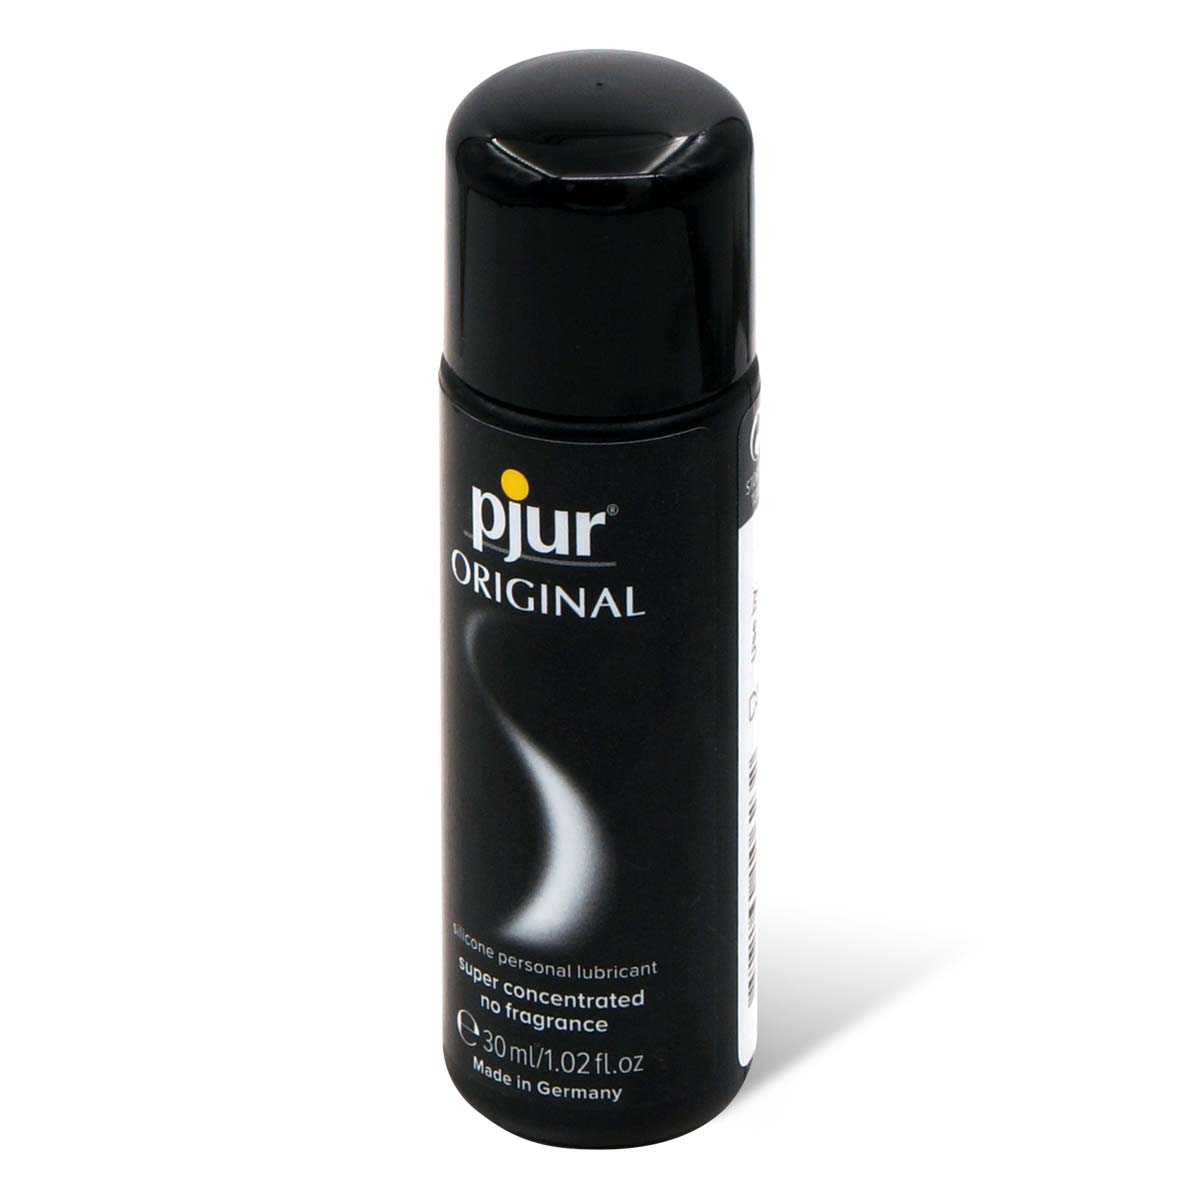 pjur ORIGINAL 30ml Silicone-based Lubricant